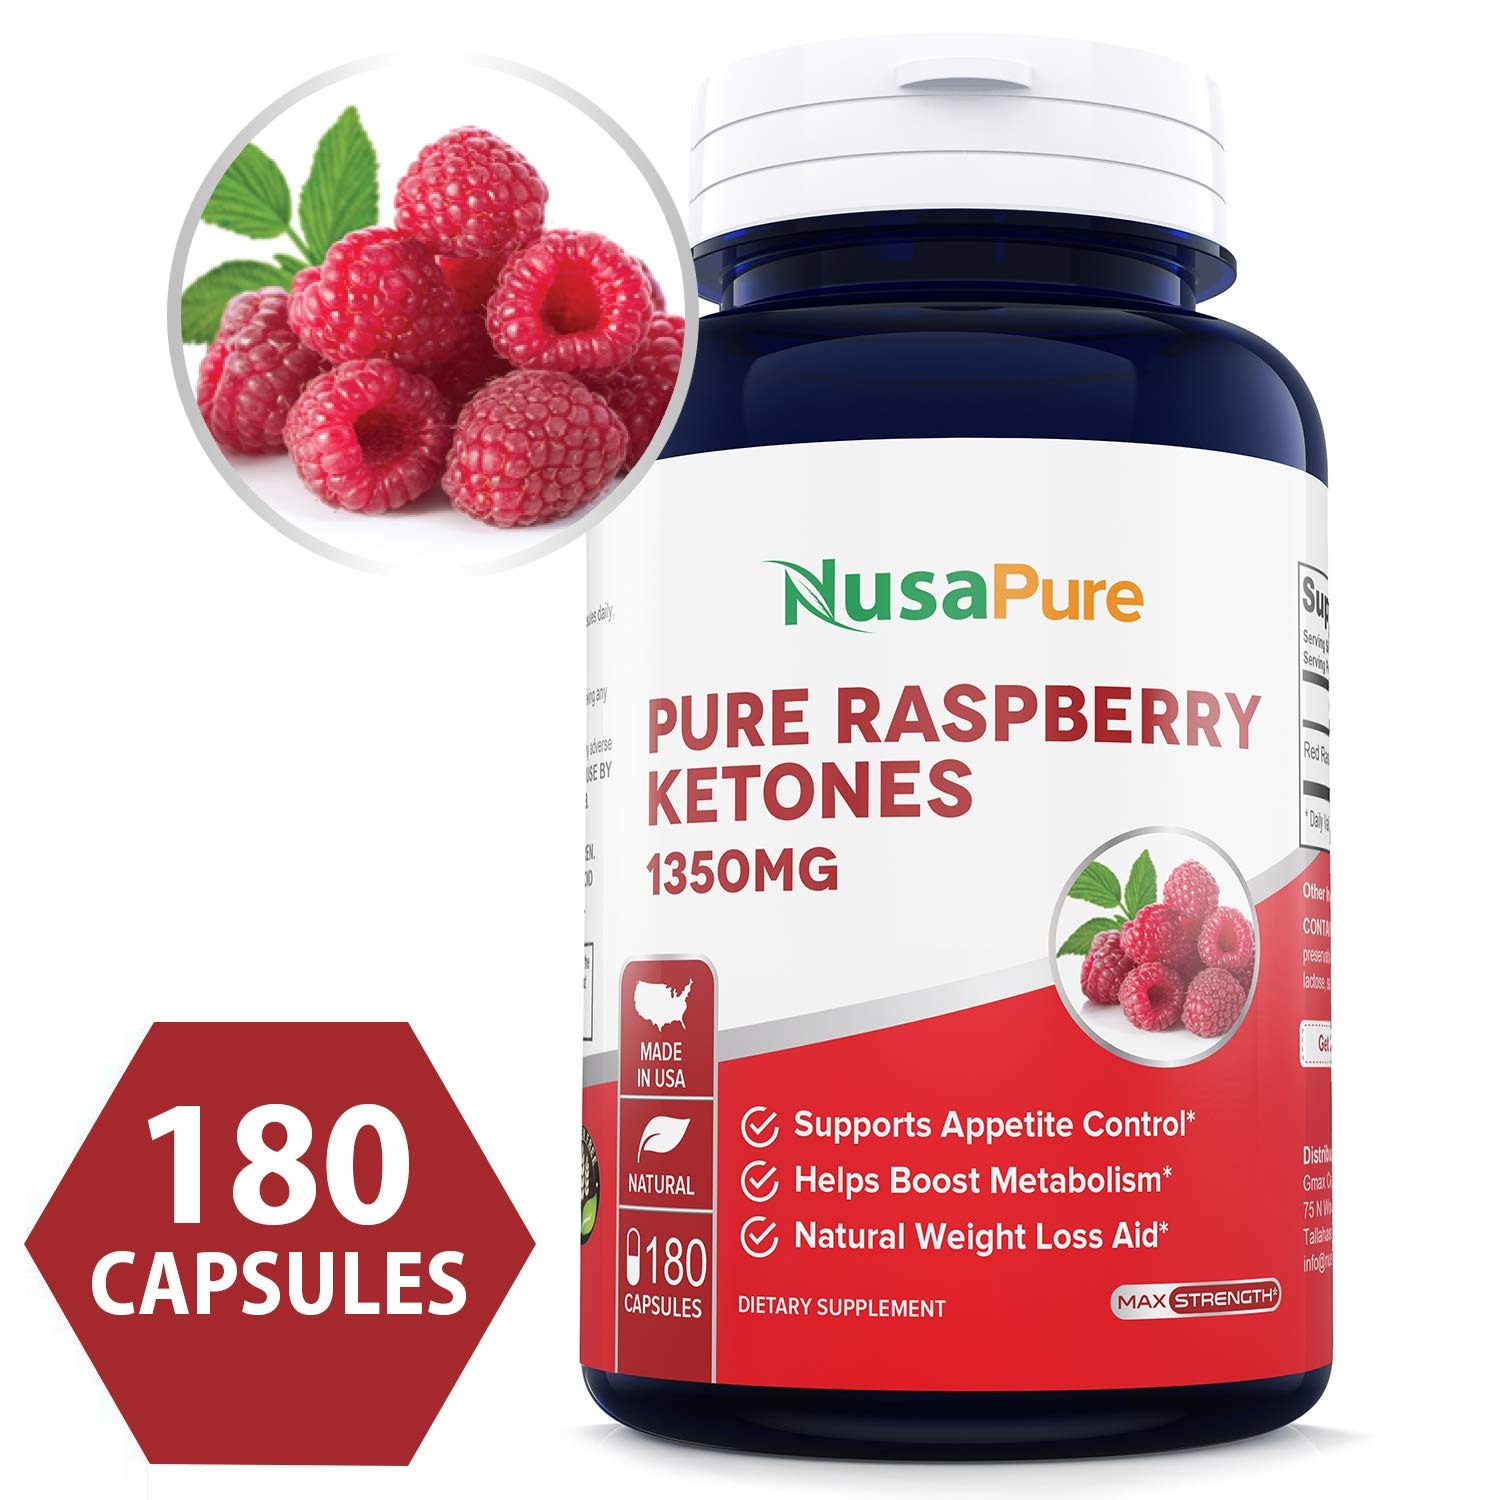 Raspberry Ketones 1350mg (Non-GMO & Gluten Free) All Natural Weight Loss Supplement, Max Strength Plus Appetite Suppressant Diet Pills - 450mg Per Capsule by NusaPure